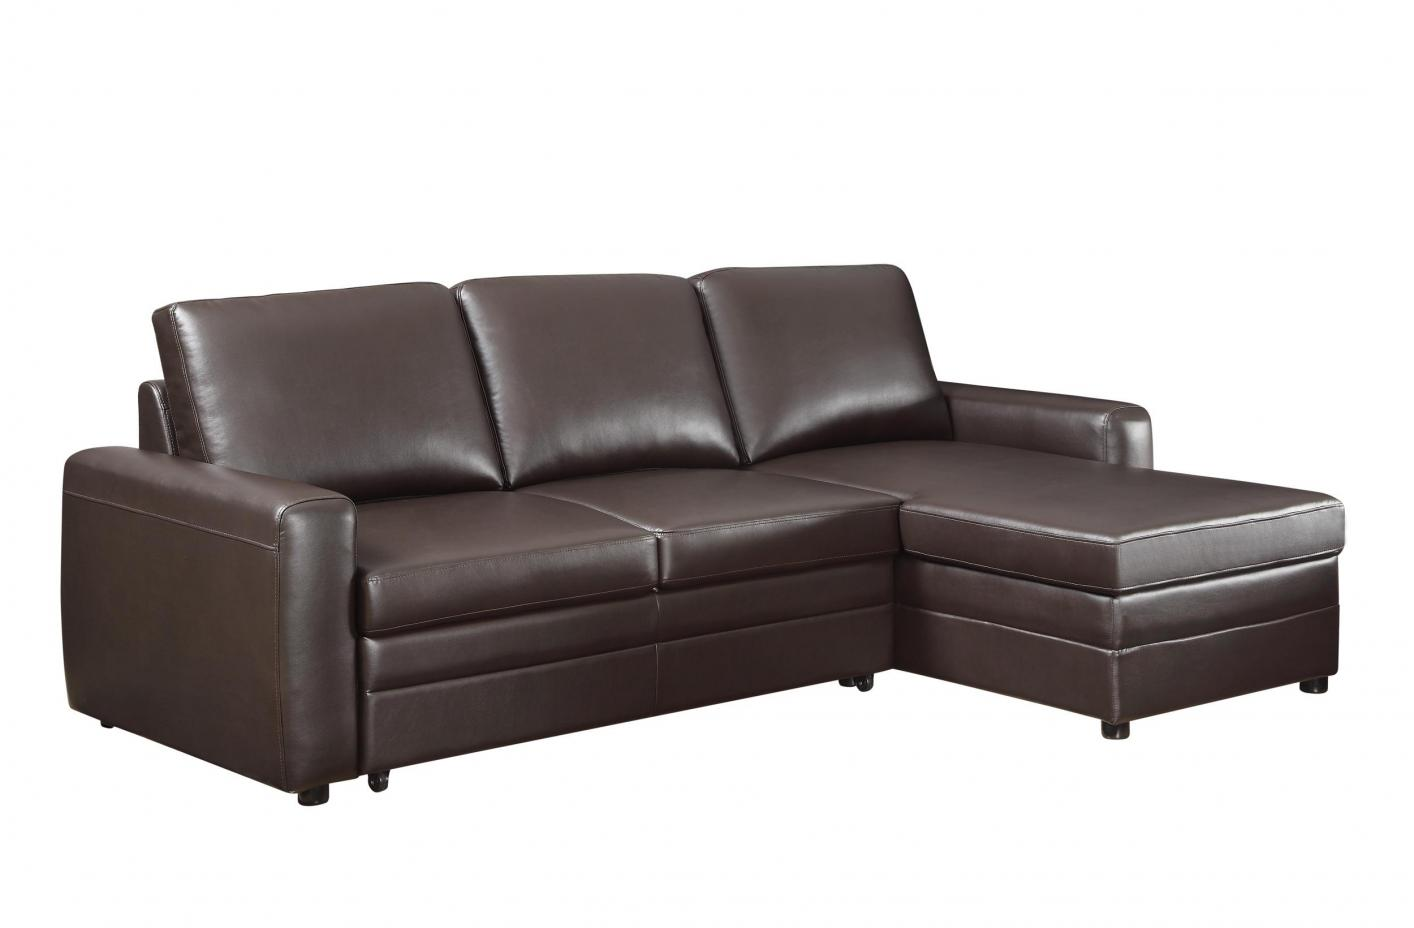 Coaster Gus 503870 Brown Leather Sectional Sofa  StealA